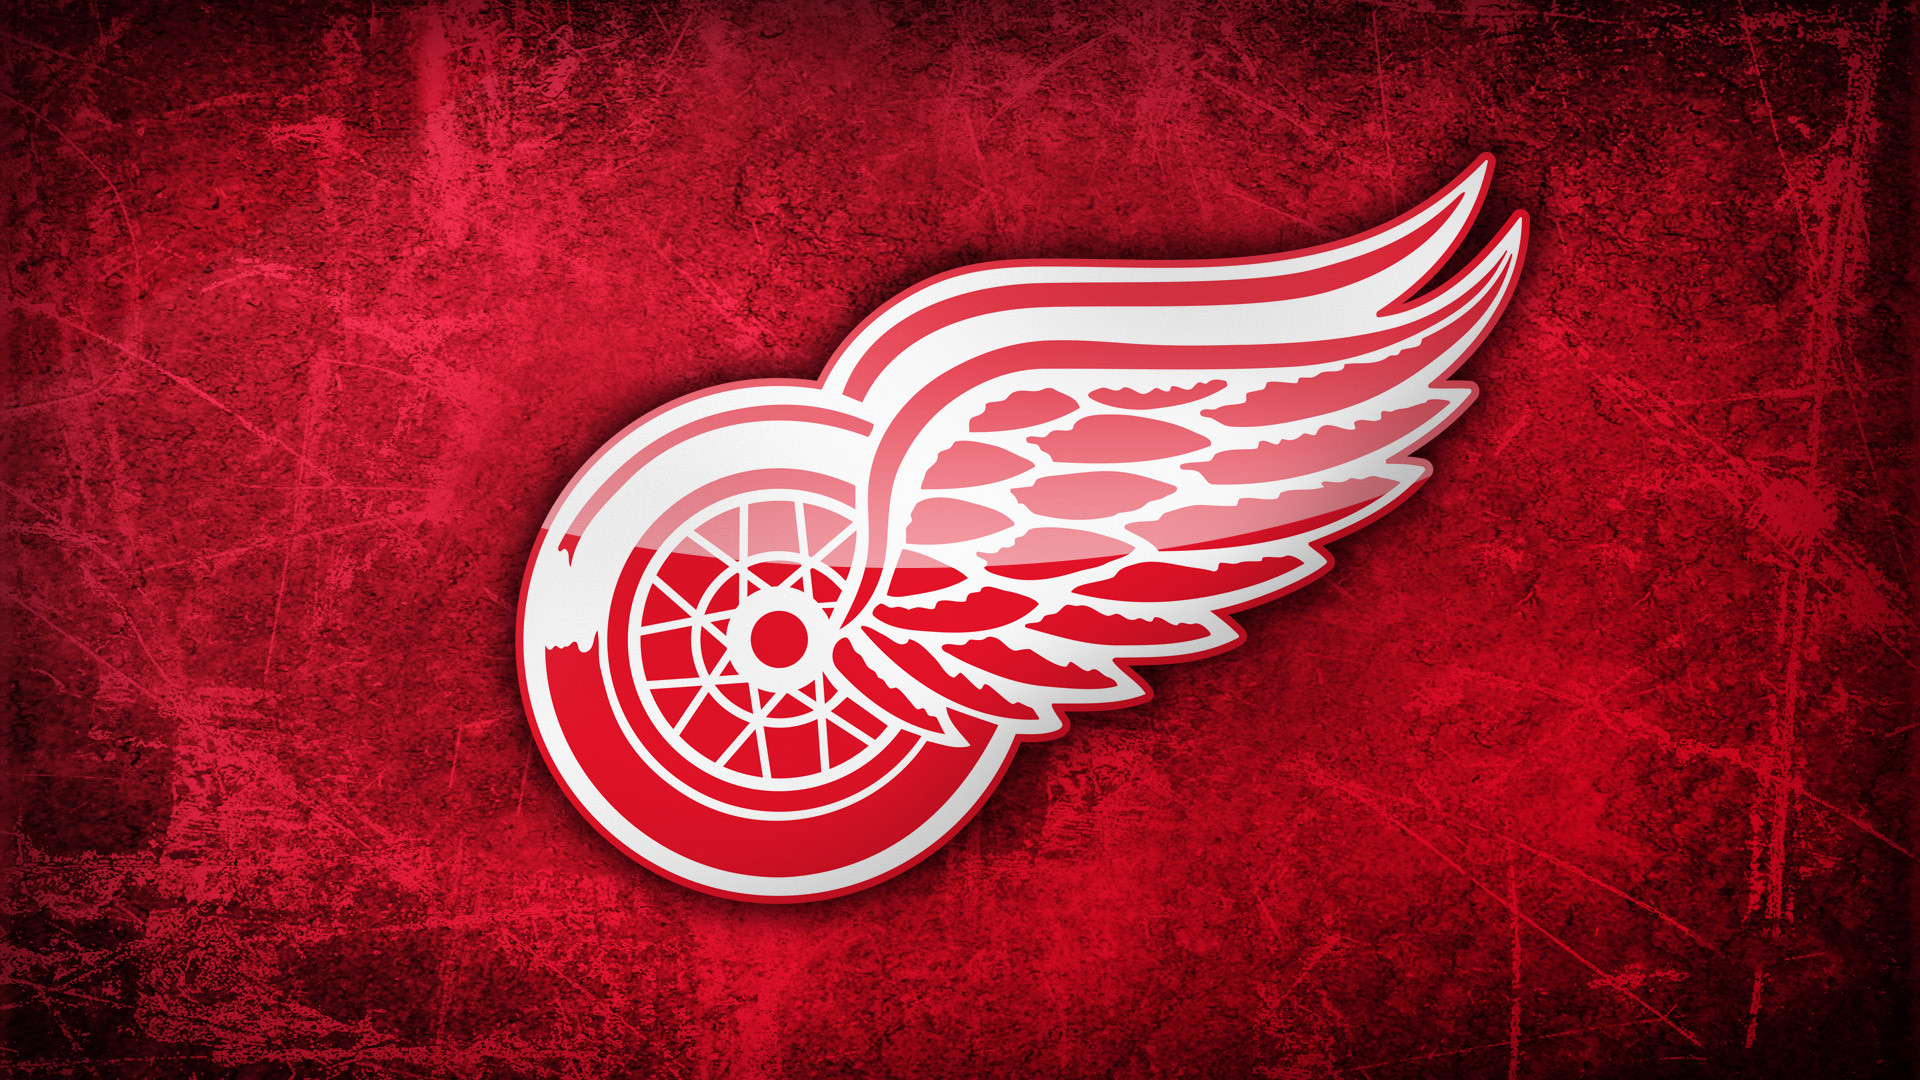 HD Detroit Red Wings Wallpapers 1920x1080